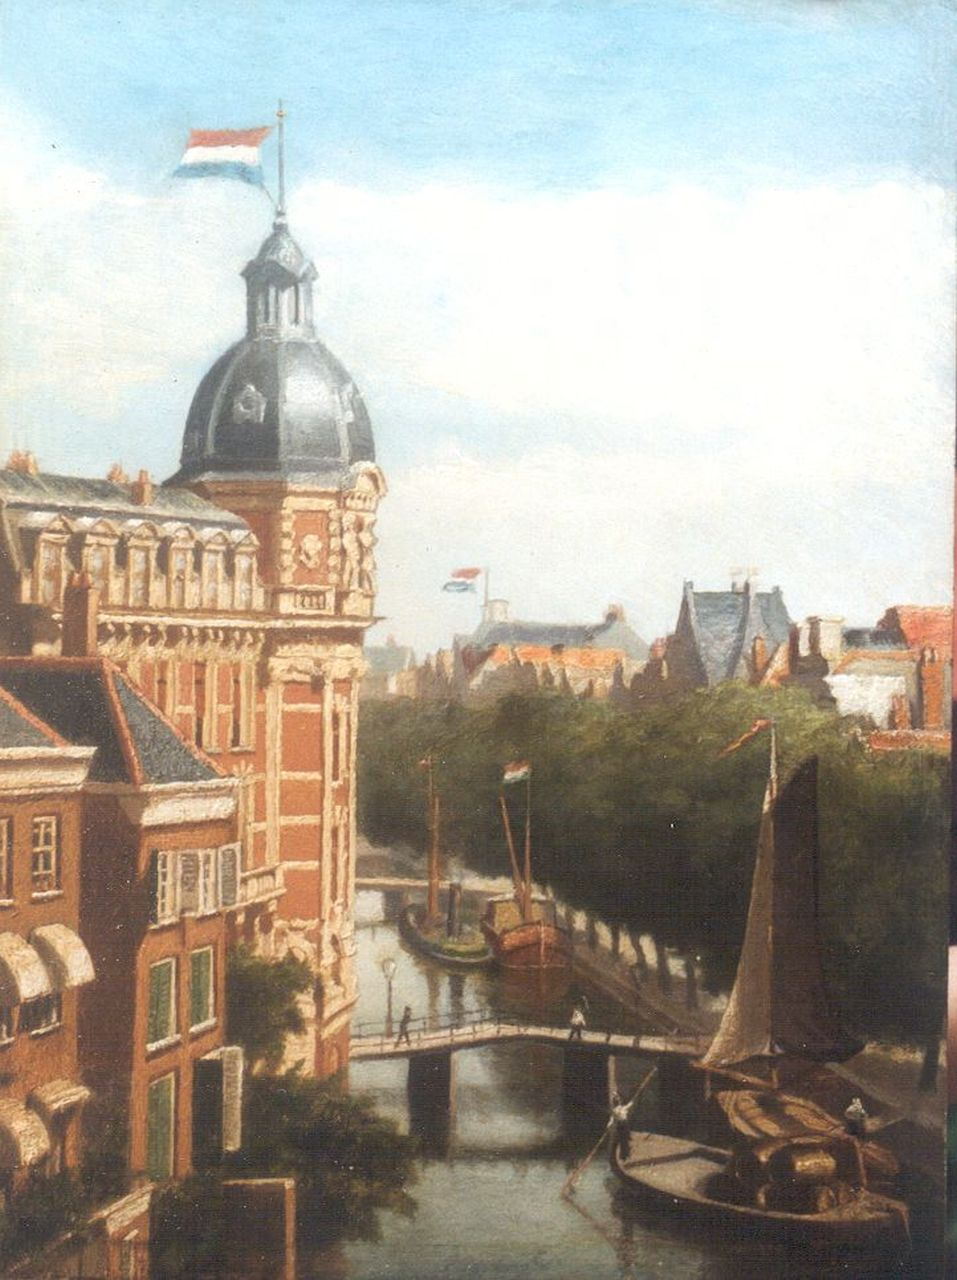 Maurits Monnickendam | The Doelen Hotel, Amsterdam, oil on panel, 36.0 x 26.8 cm, signed l.r. and dated 1890